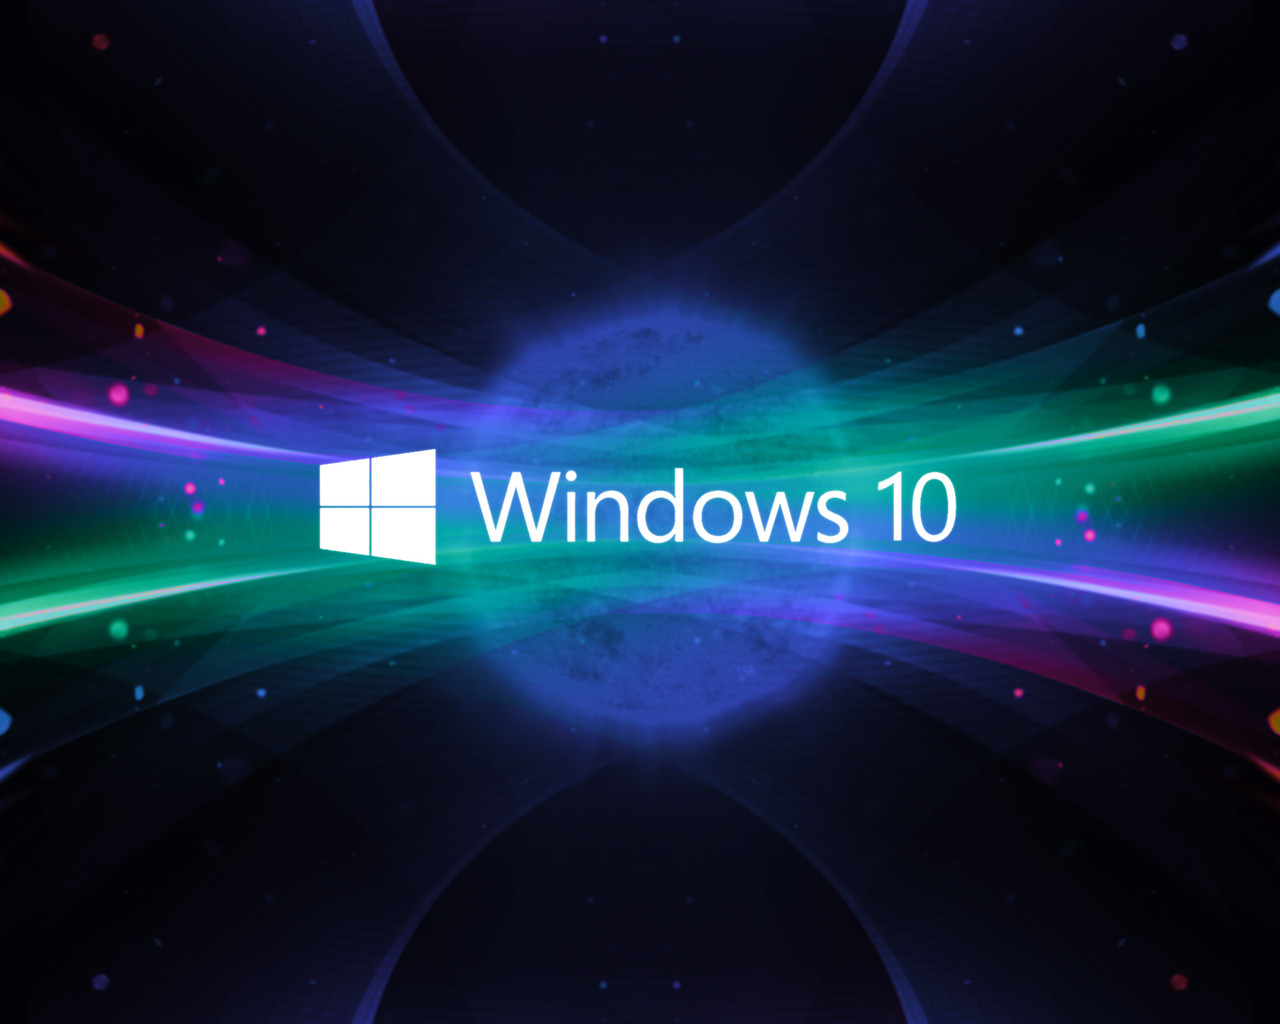 windows 10 wallpaper 1280x1024